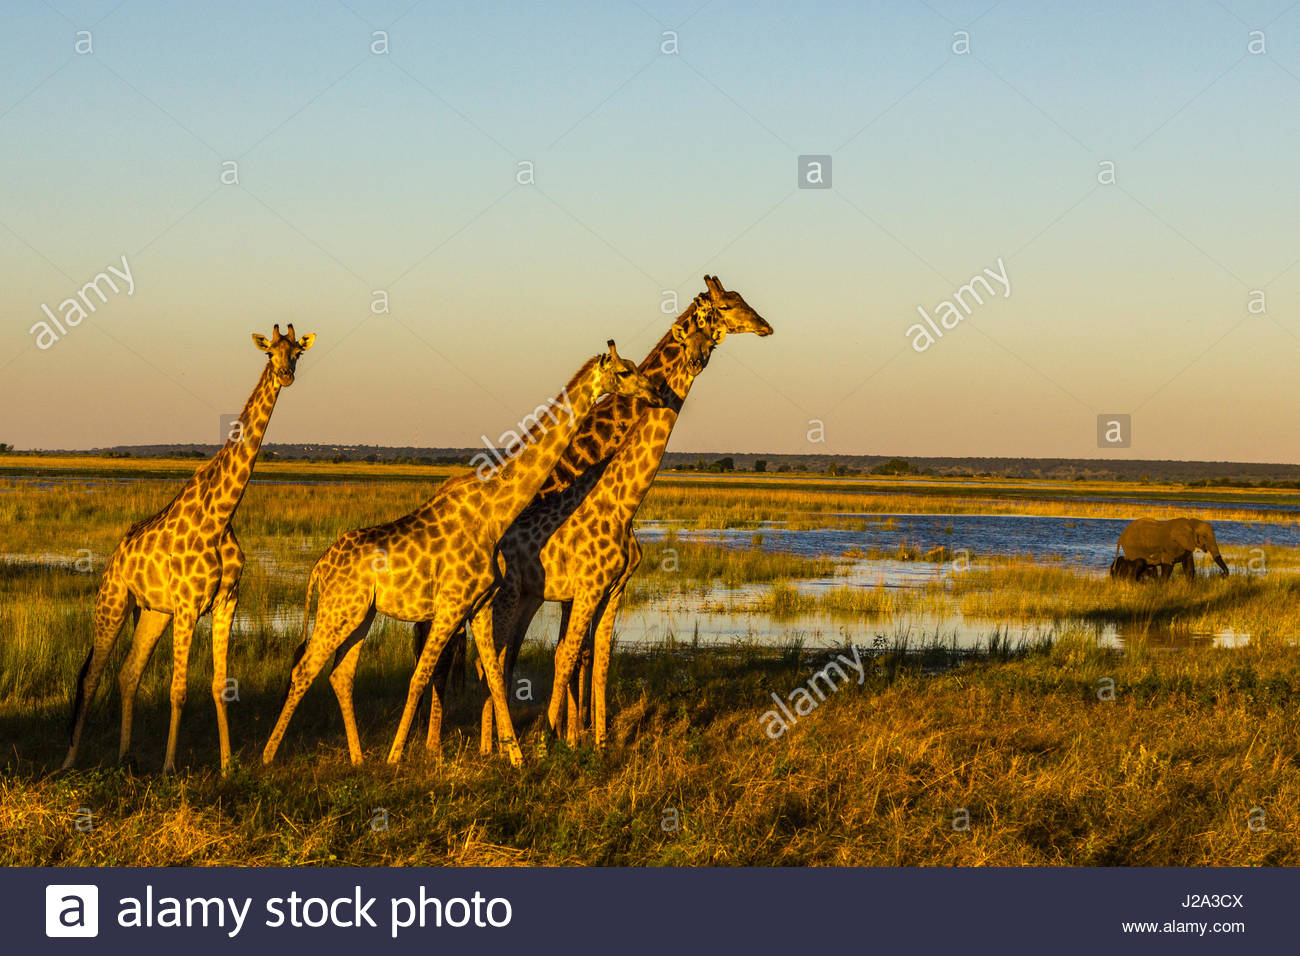 A group of Giraffe walk alongside the Chobe River in the setting sun, whilst an Elephant and Calf grave nearby. - Stock Image